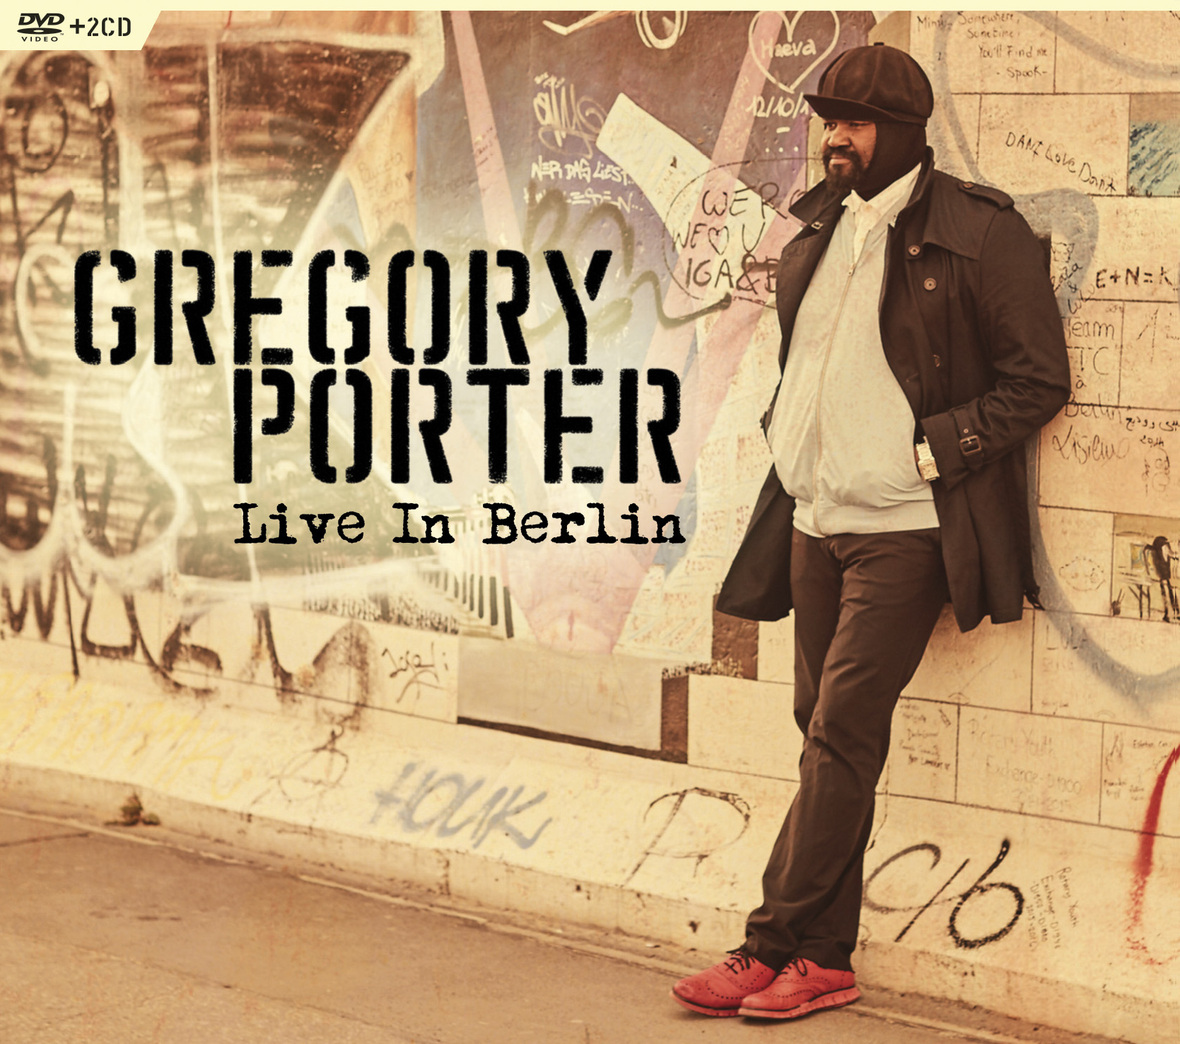 watch new video gregory porter 39 s live in berlin dvd 2cd coming nov 18th 2016. Black Bedroom Furniture Sets. Home Design Ideas